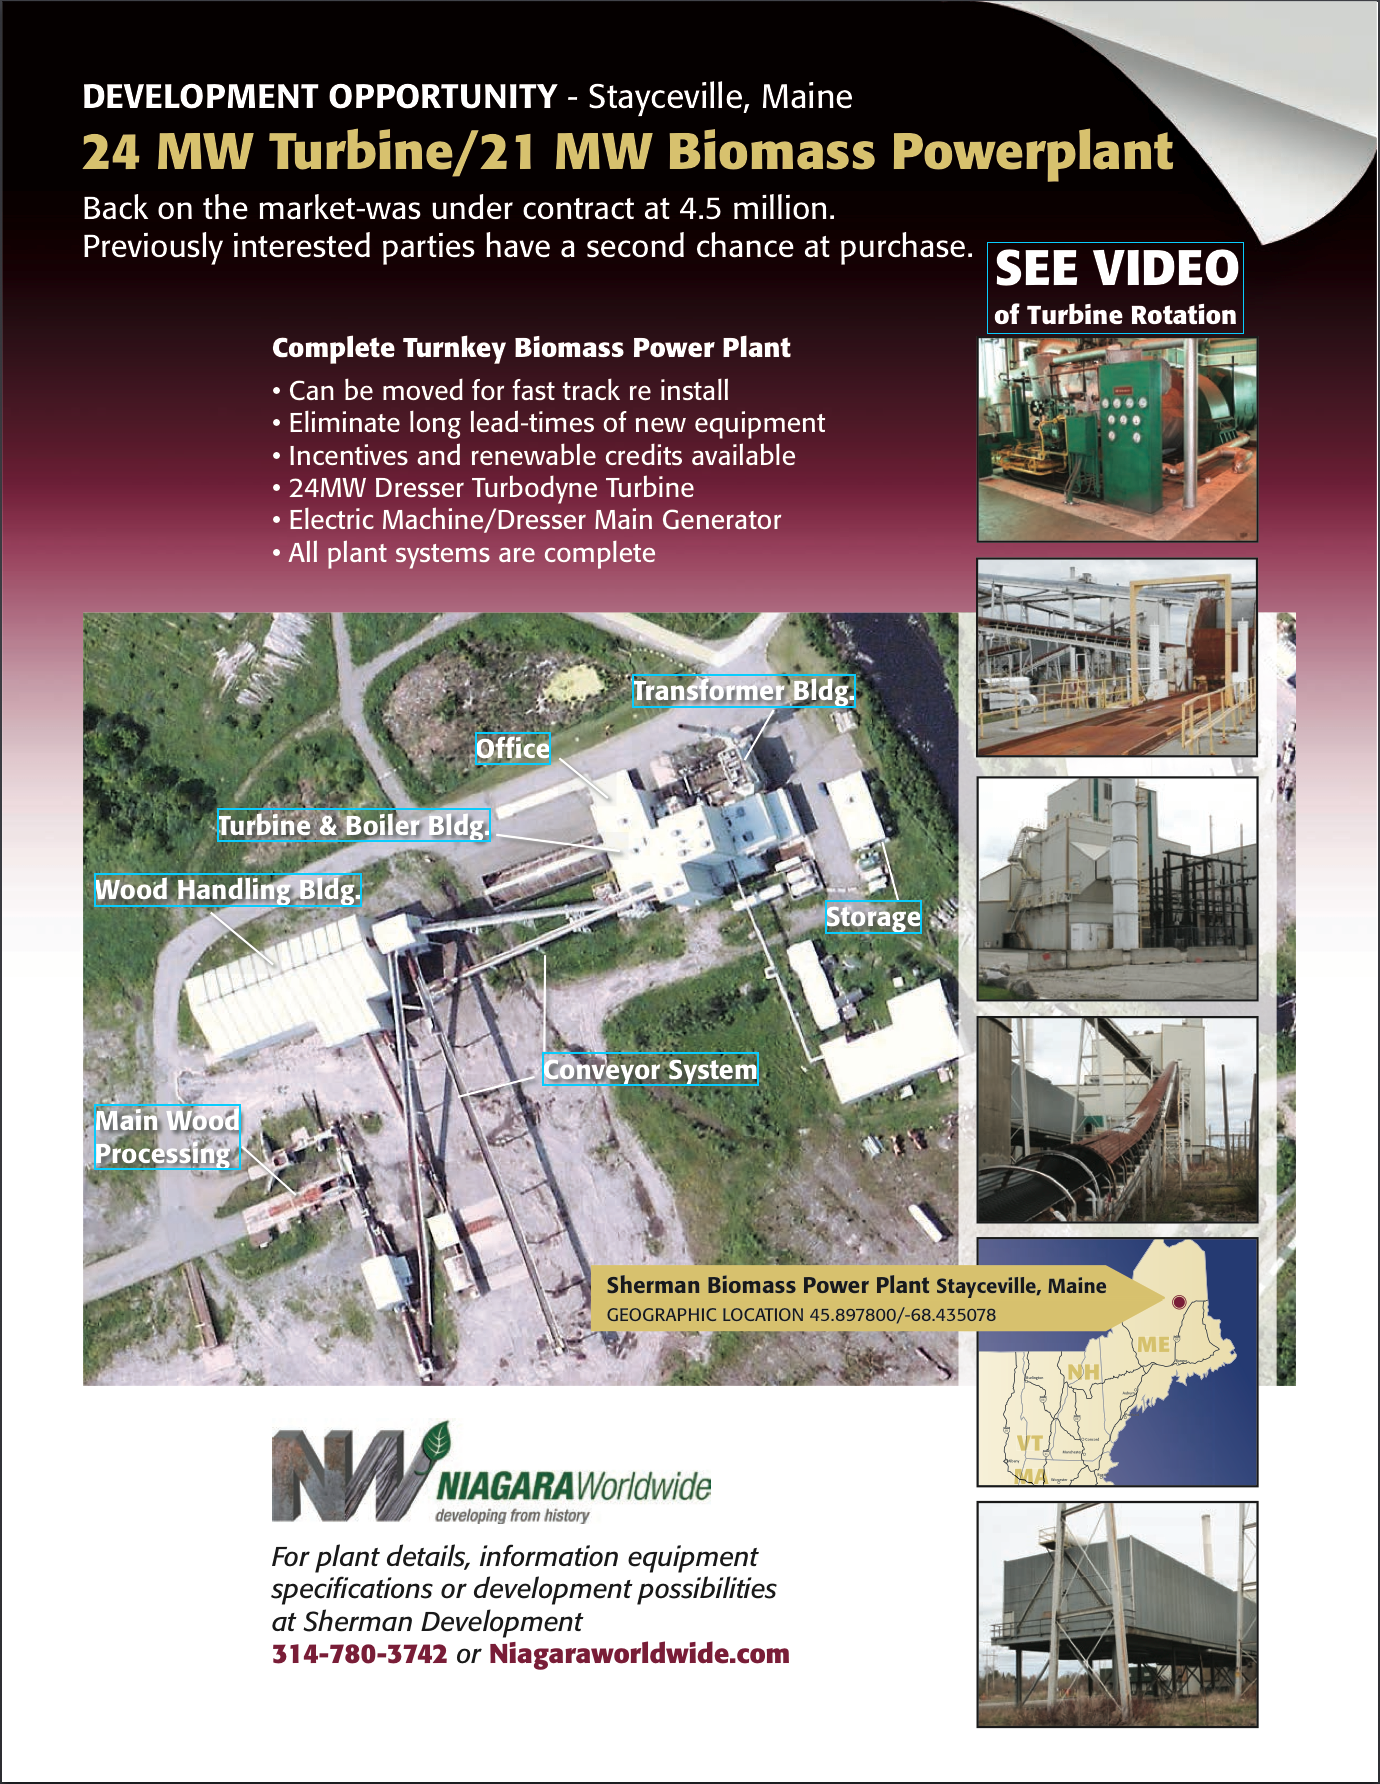 owner of mw biomass power plant in sherman maine turn down image